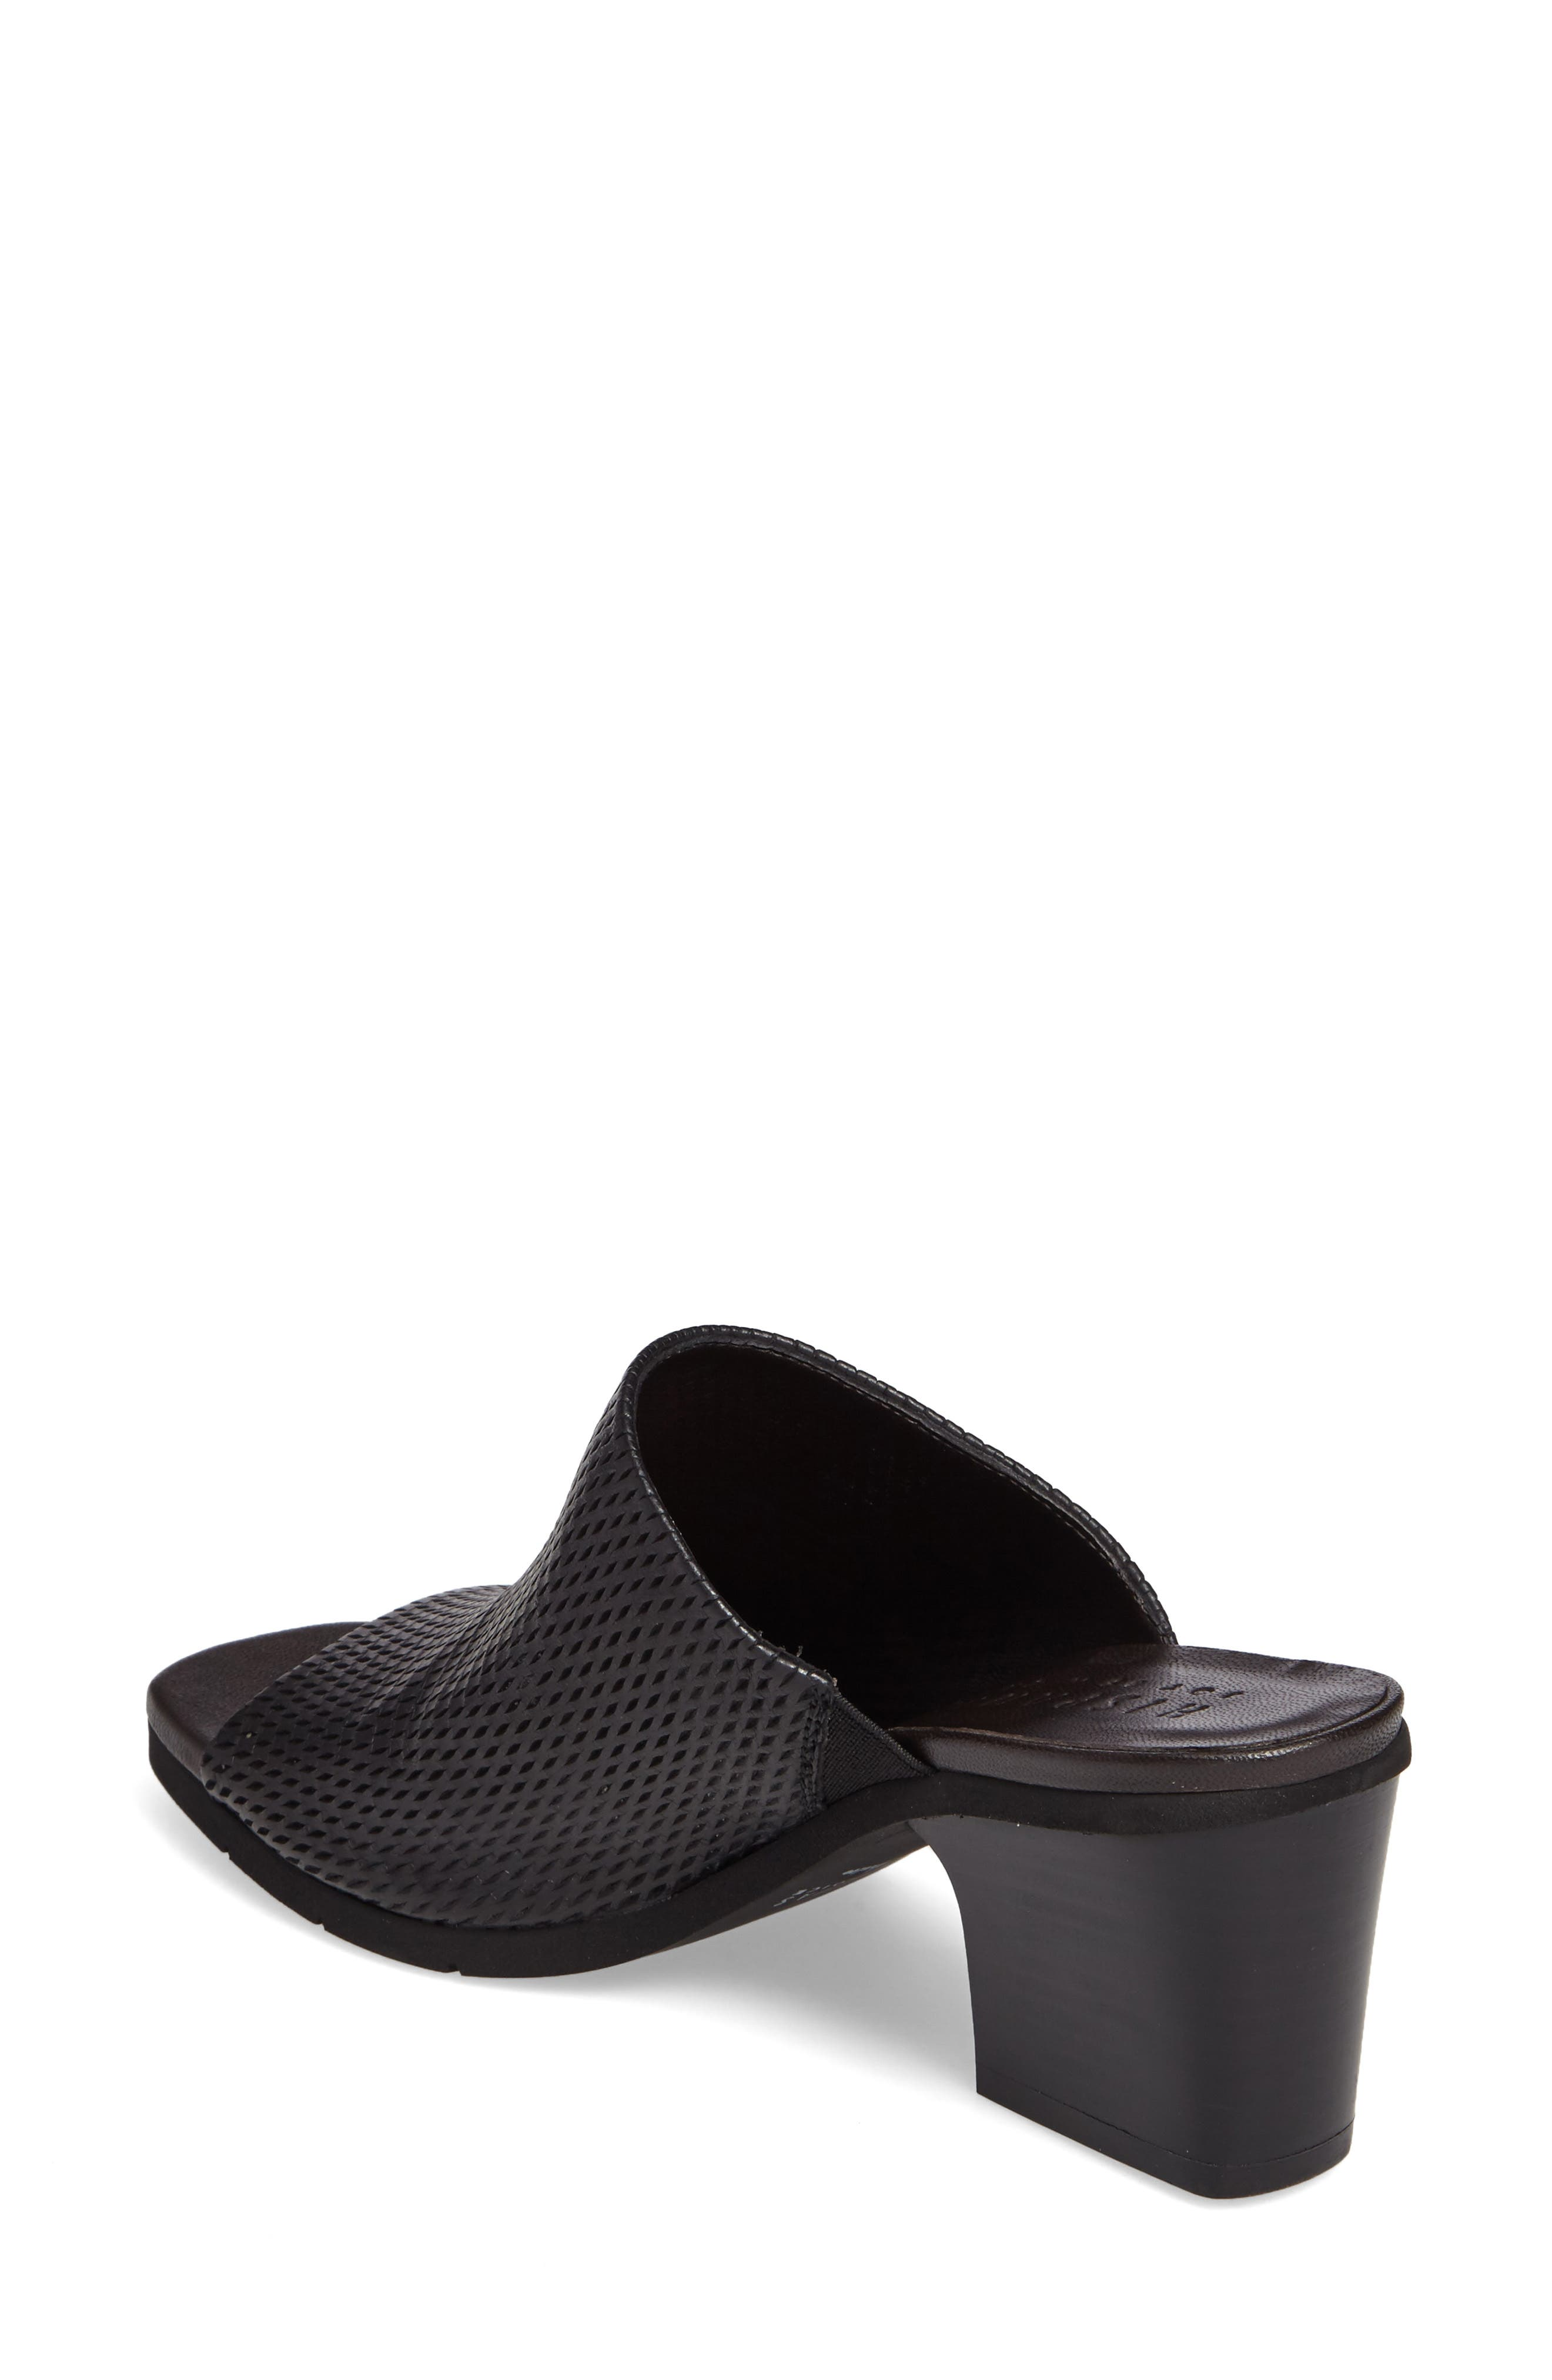 Udora Perforated Mule,                             Alternate thumbnail 2, color,                             Keops Black Leather